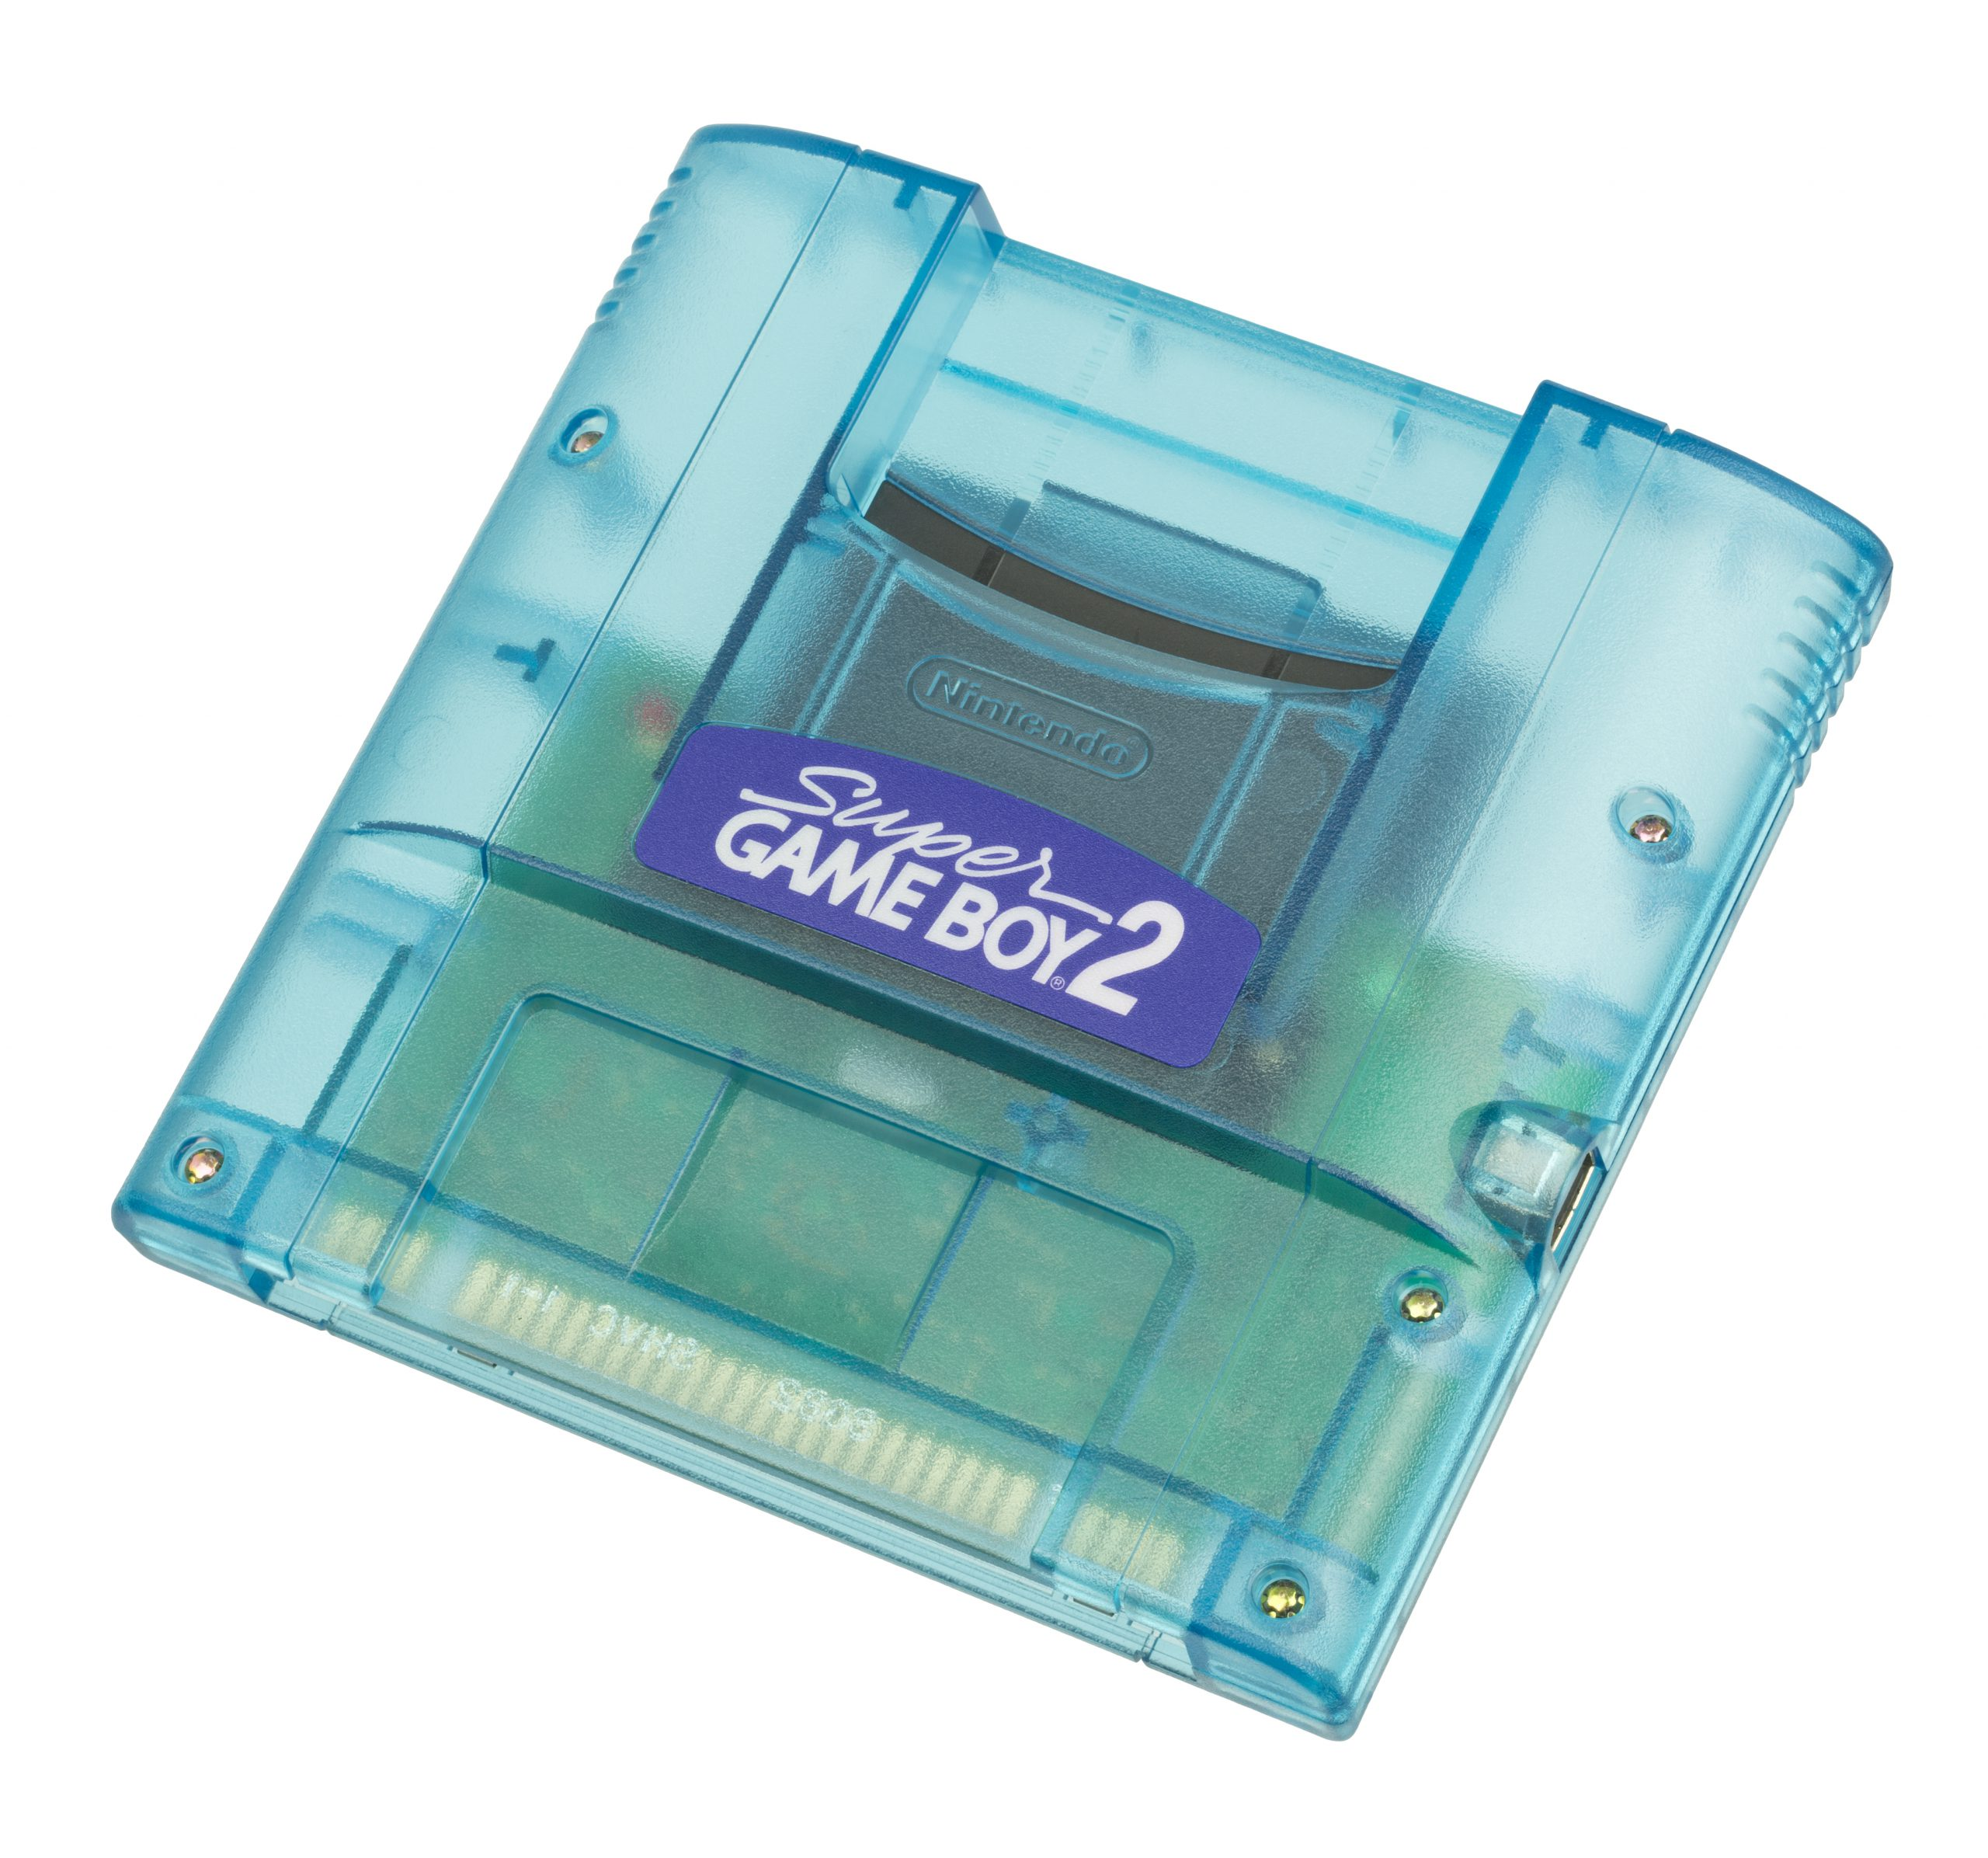 SD2SNES Super Game Boy Open-Sourced, Author Revealed